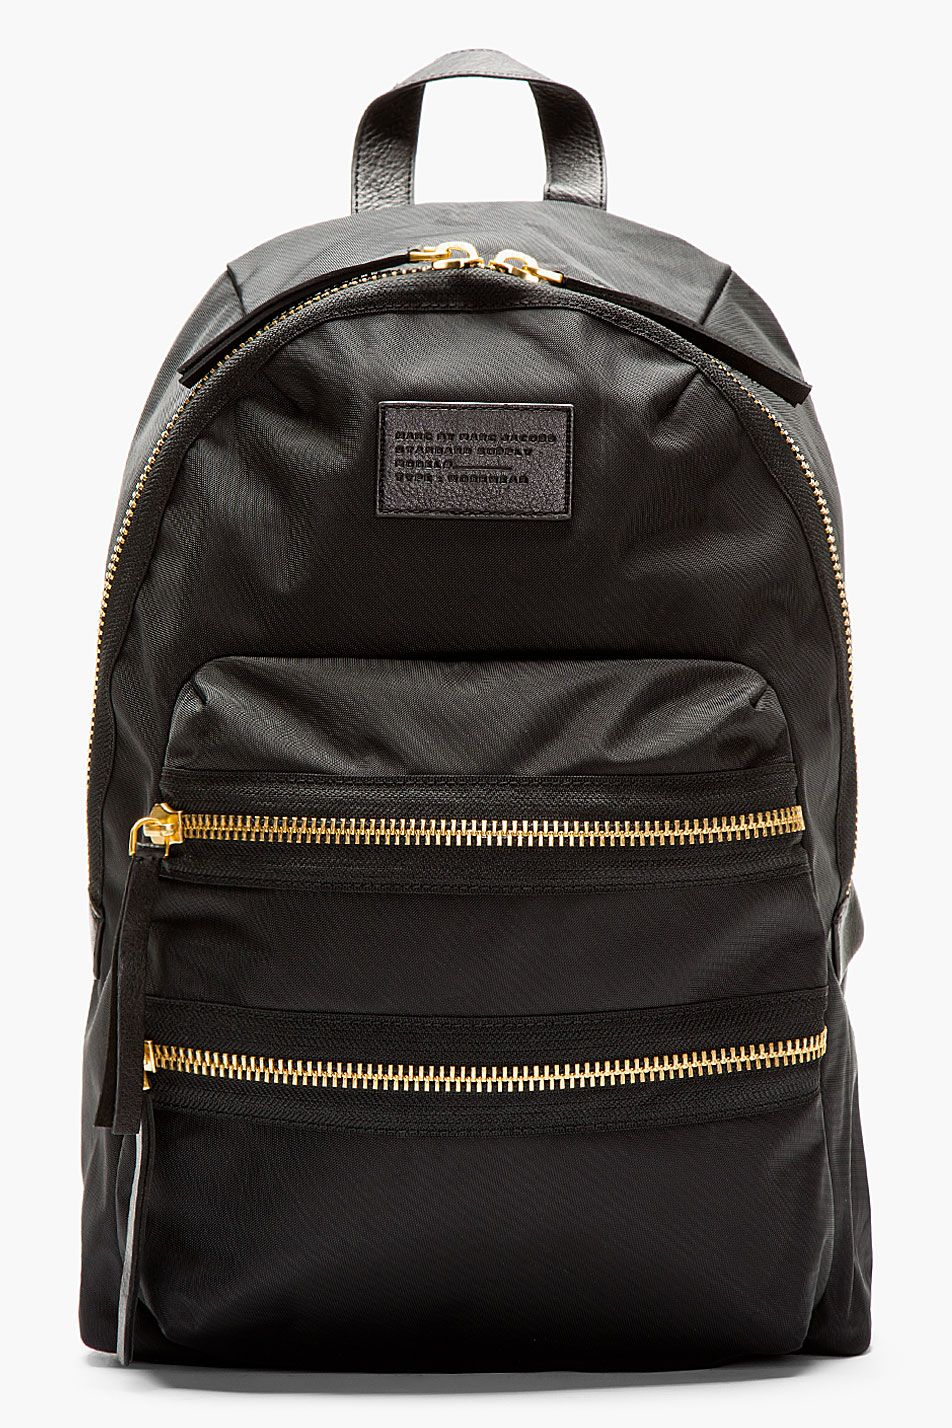 3bcf318d80f Marc By Marc Jacobs Black And Gold Domo Arigato Packrat Backpack ...